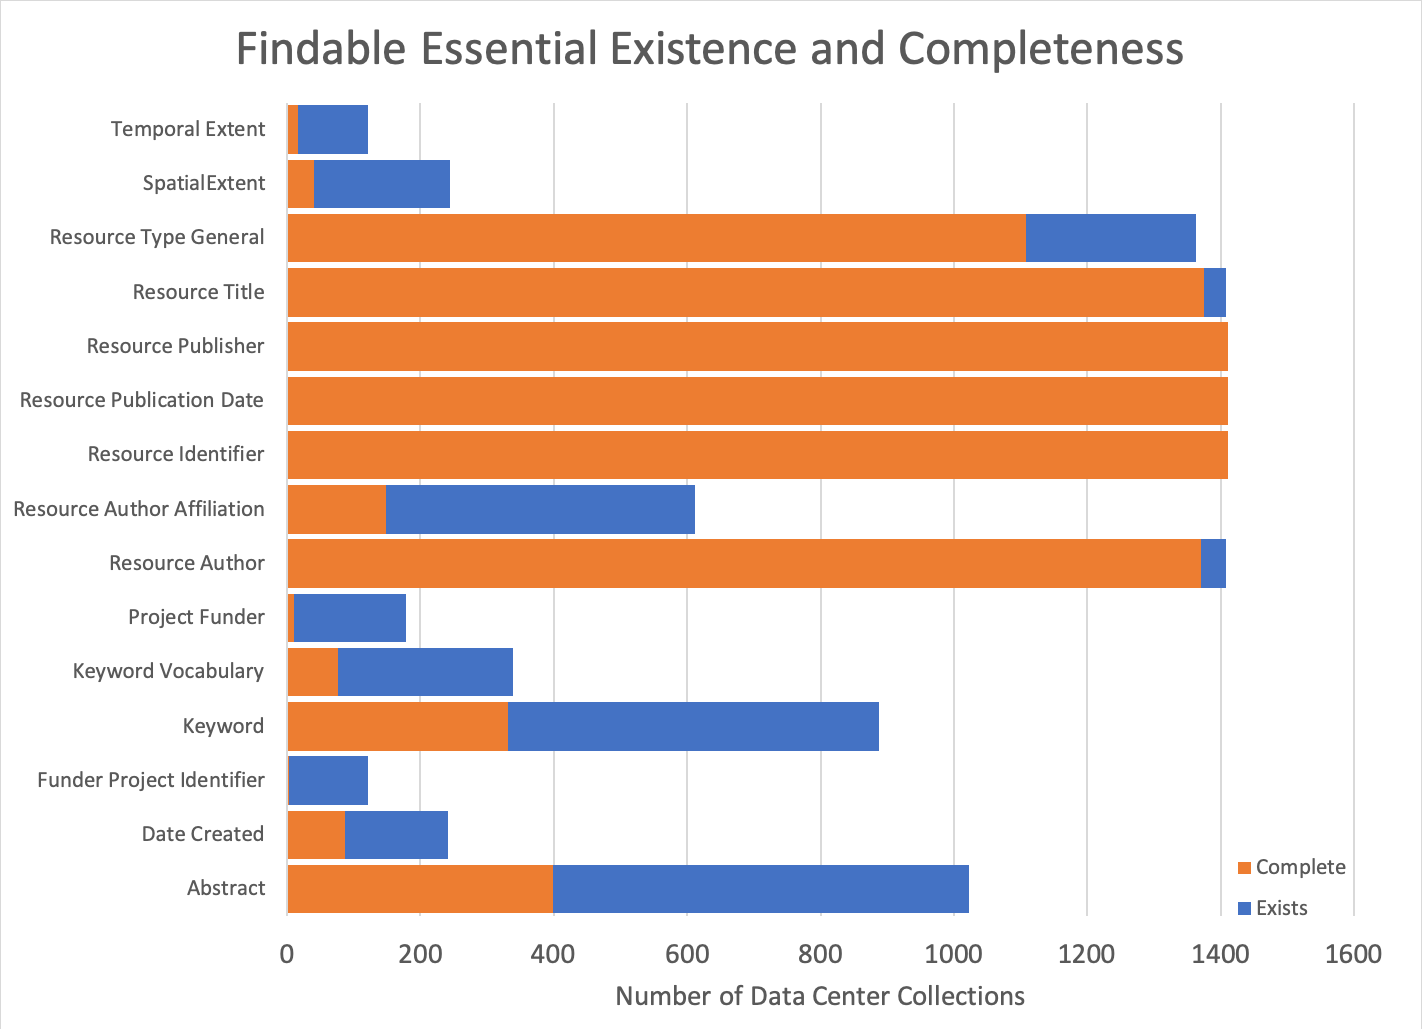 Figure 2. Existence and completeness of Findable Essential metadata elements